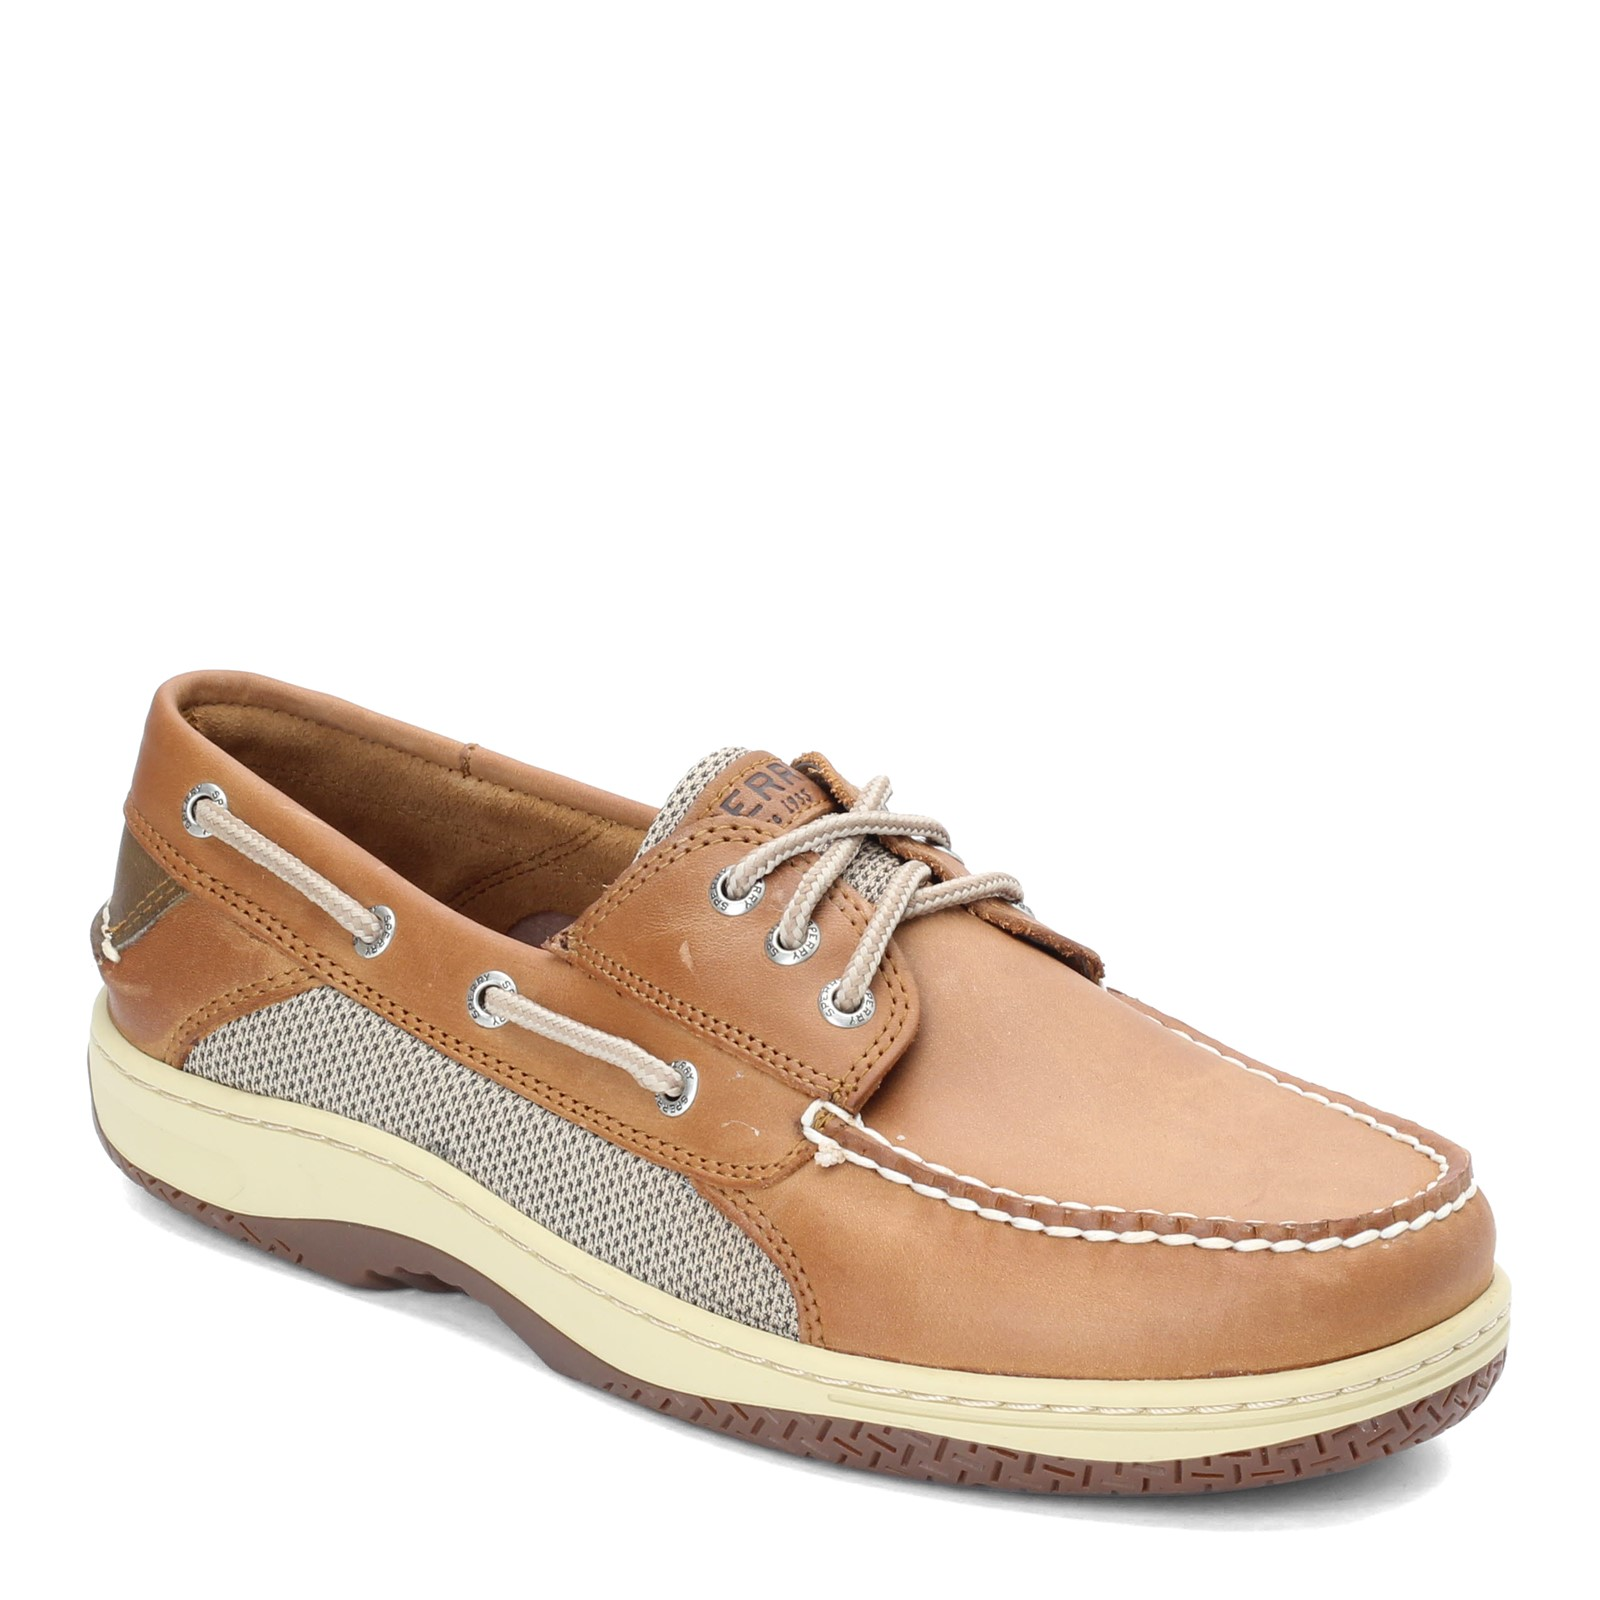 Men's Sperry, Billfish 3-Eye Boat Shoe